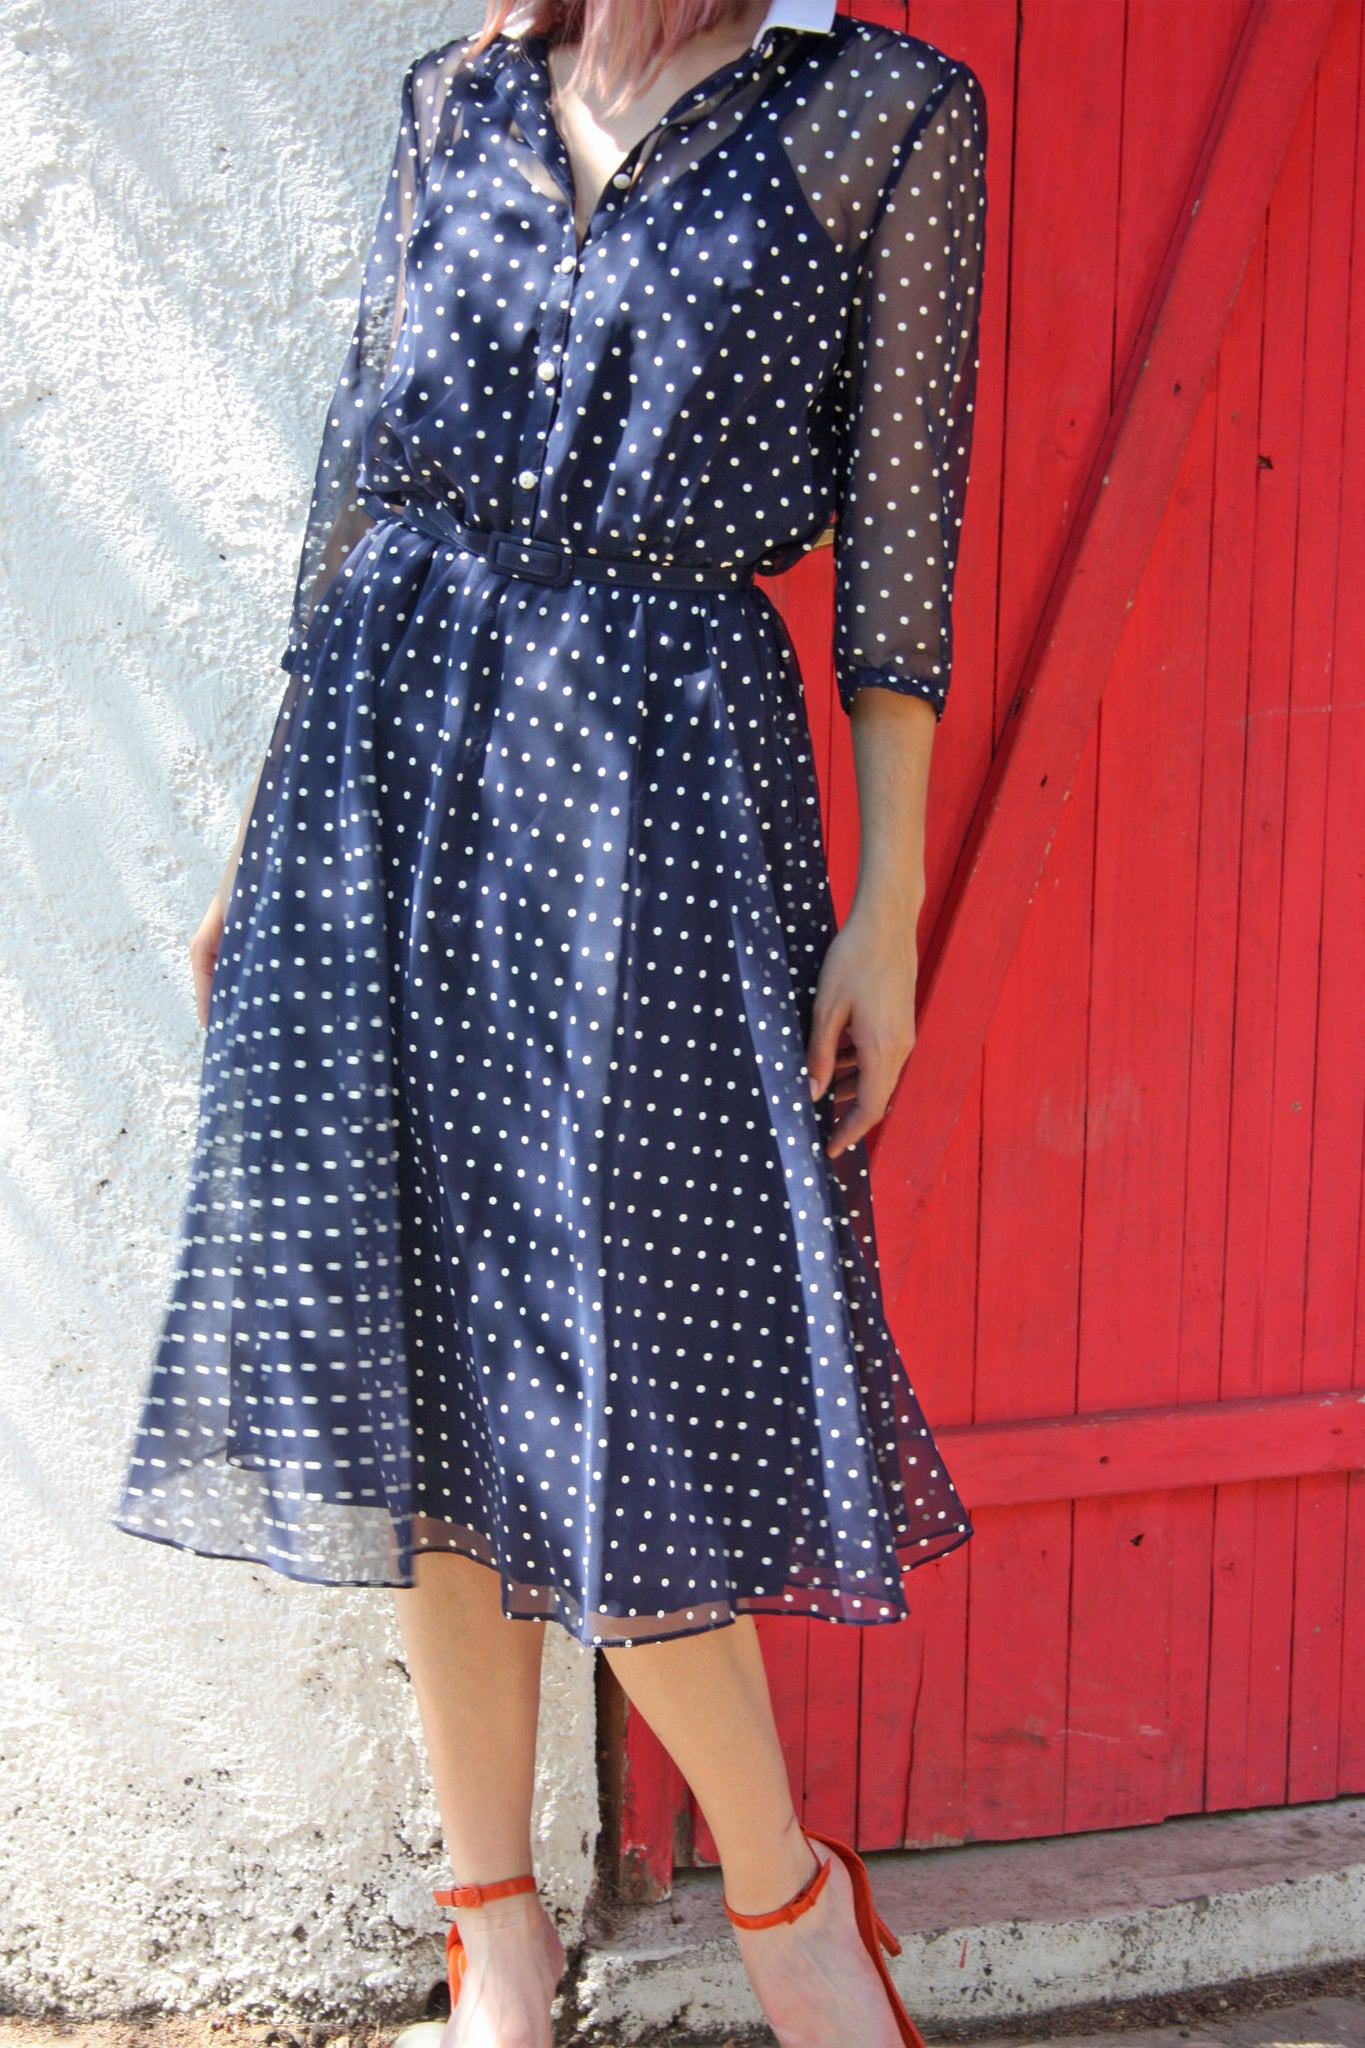 Retro vintage polka dot dress - Shop SoLovesVintage